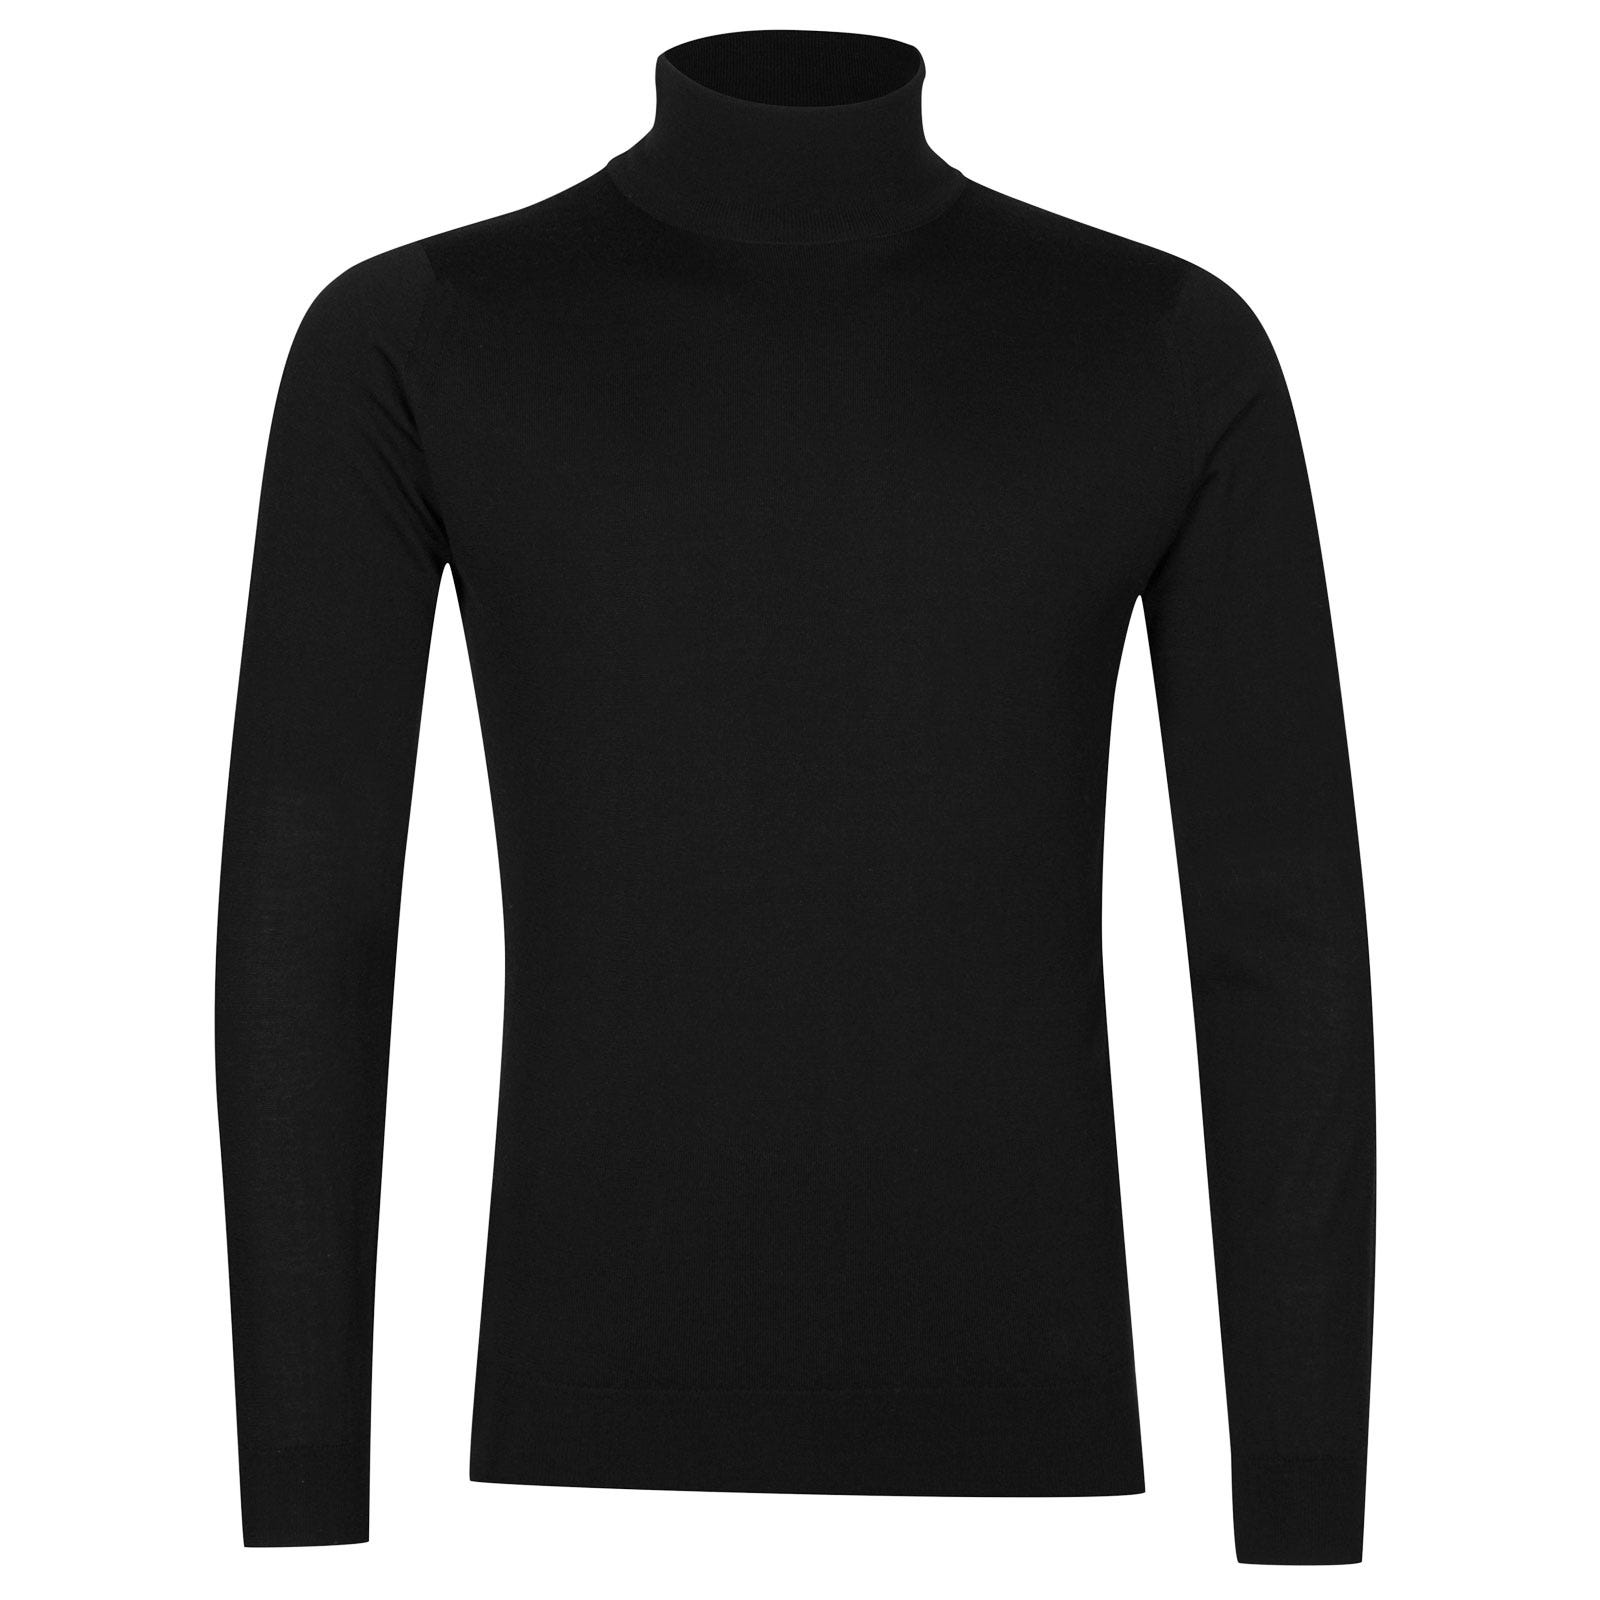 John Smedley arlington Merino Wool and Cashmere Pullover in Black-XXL